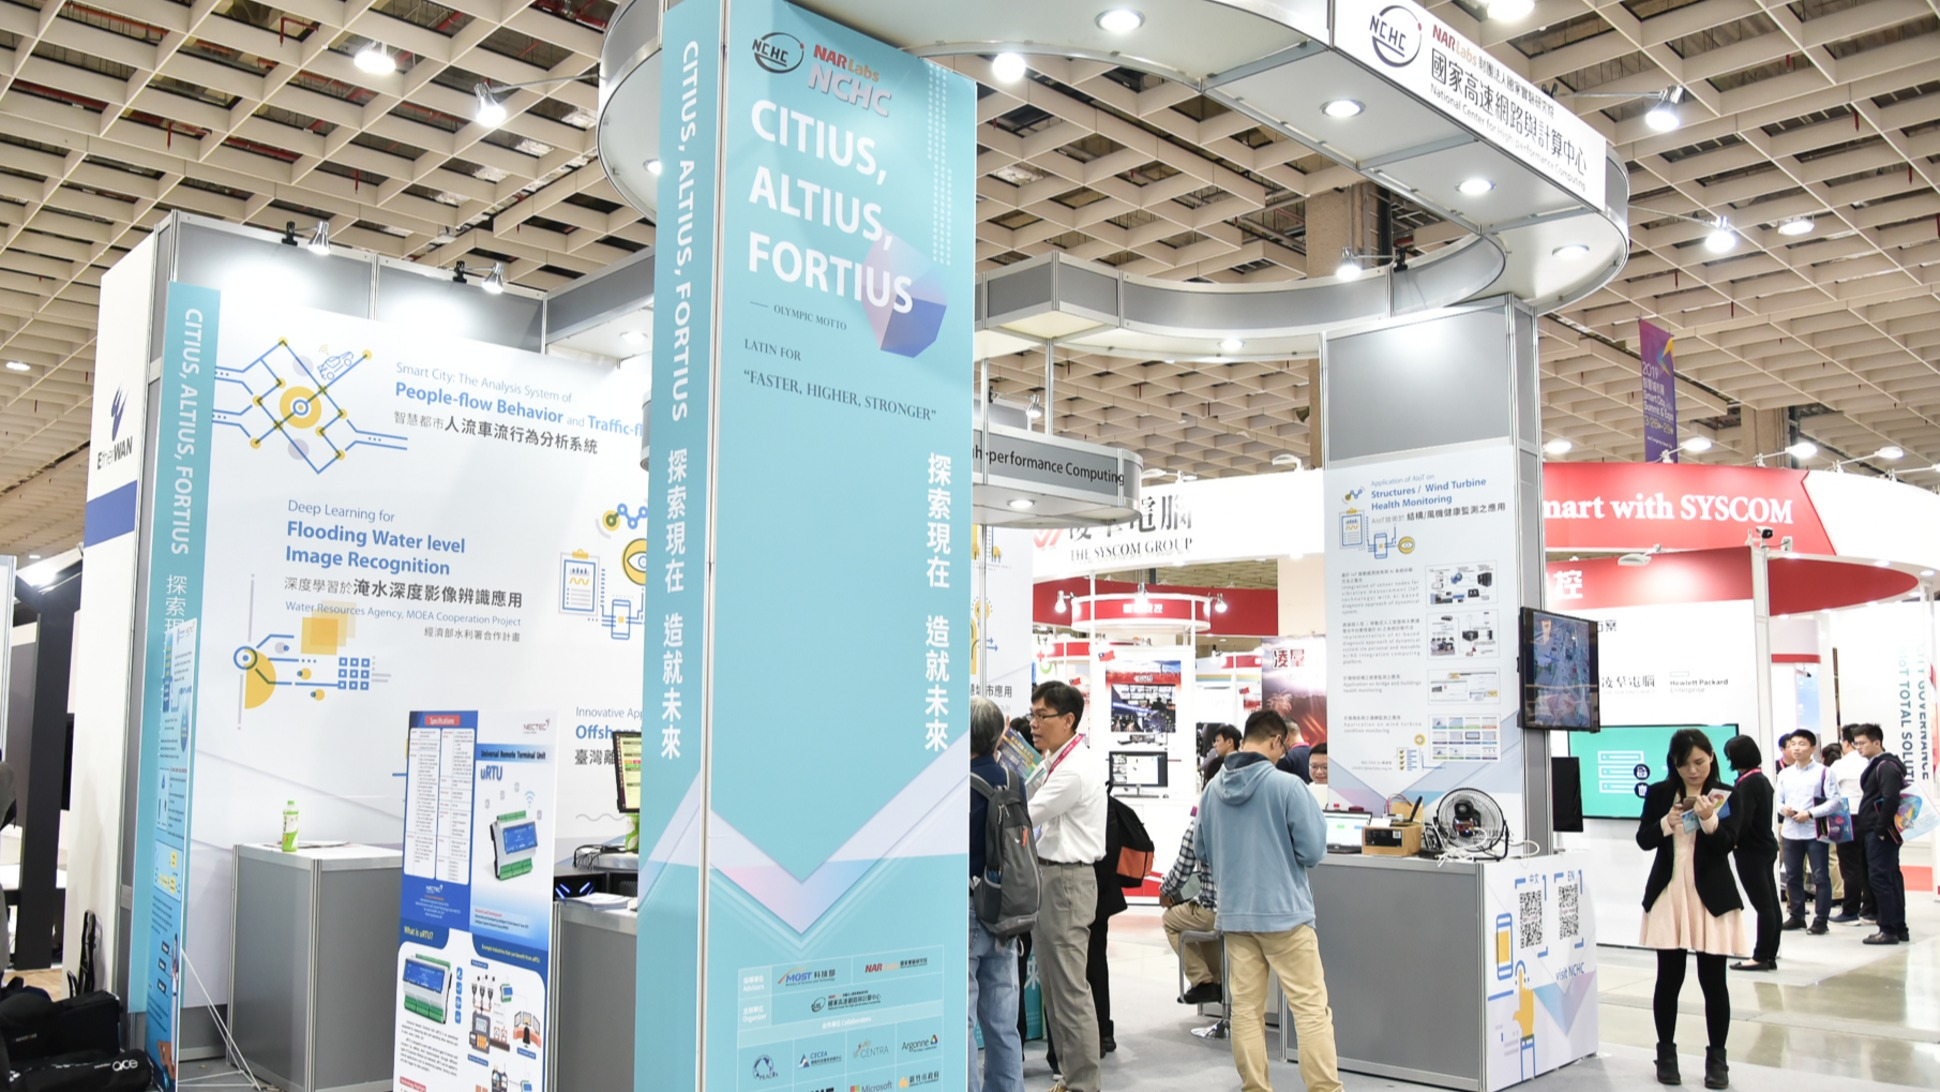 The 2019 Smart City Summit & Expo (SCSE)